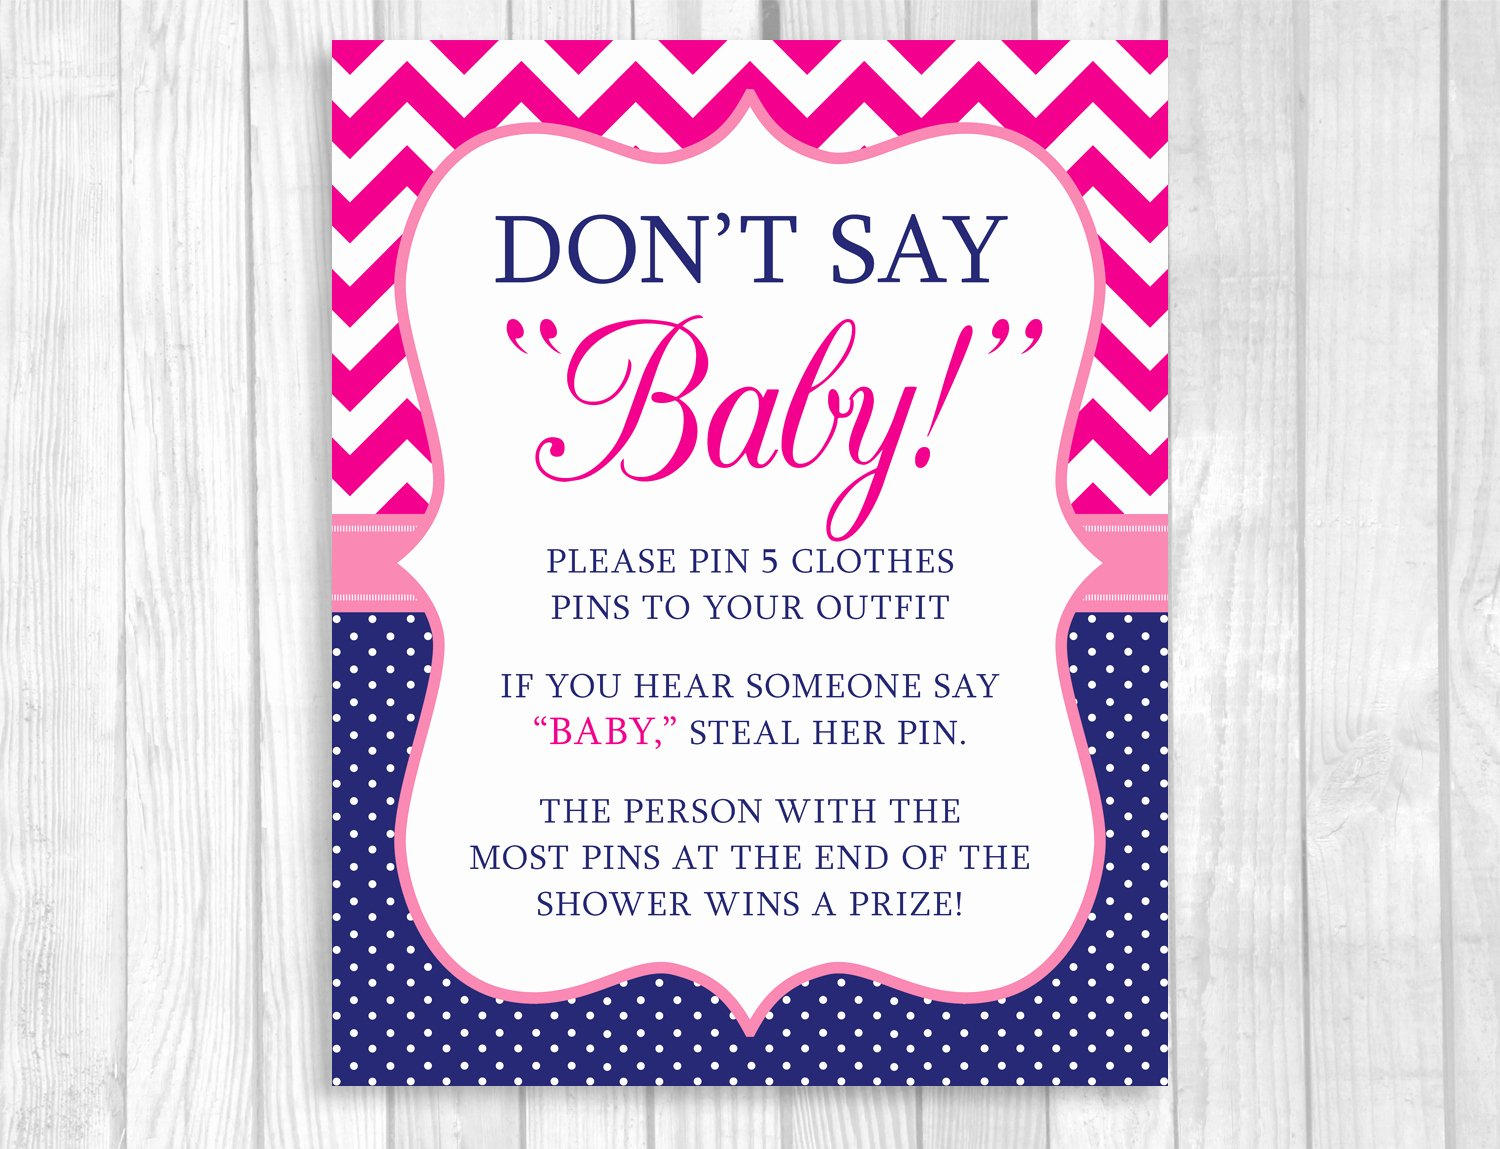 Baby Shower Signs Printable Fresh Weddings by Susan Hot Pink Chevron and Navy Blue Polka